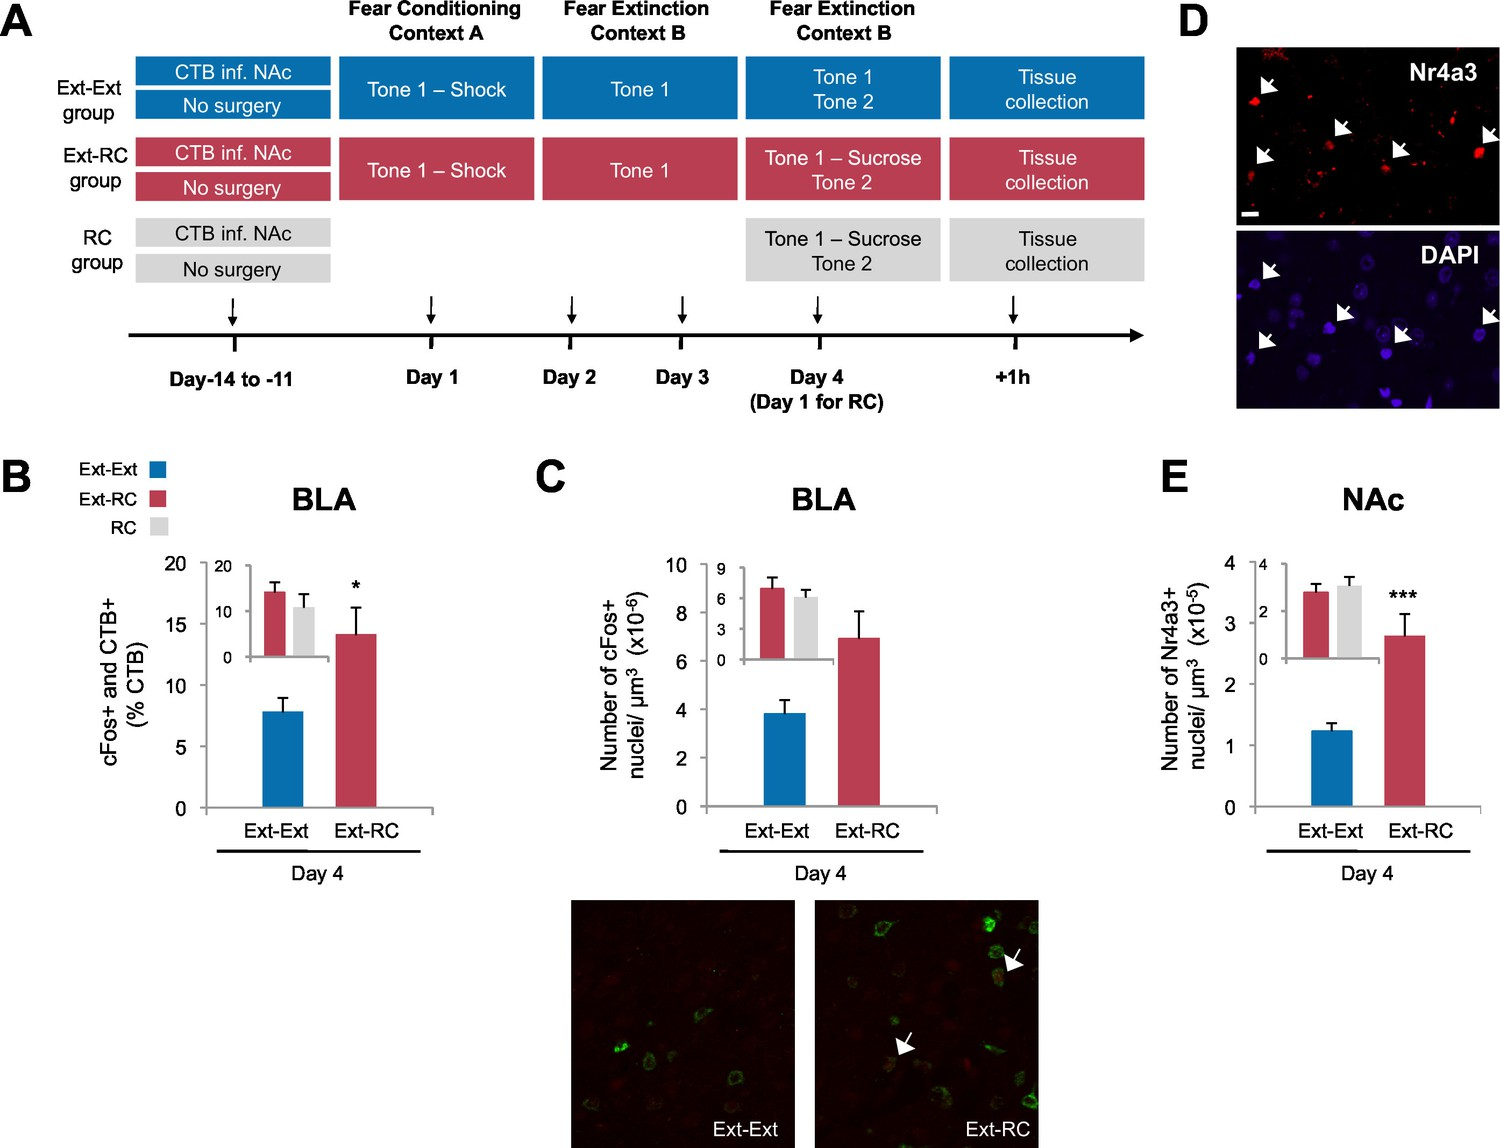 Amygdala Ventral Striatum Circuit Activation Decreases Long Term Measurement Circuits 73 In Threephase Recruitment Of A Bla Nac Is Greater Following Fear Extinction With Reward Conditioning Than Alone